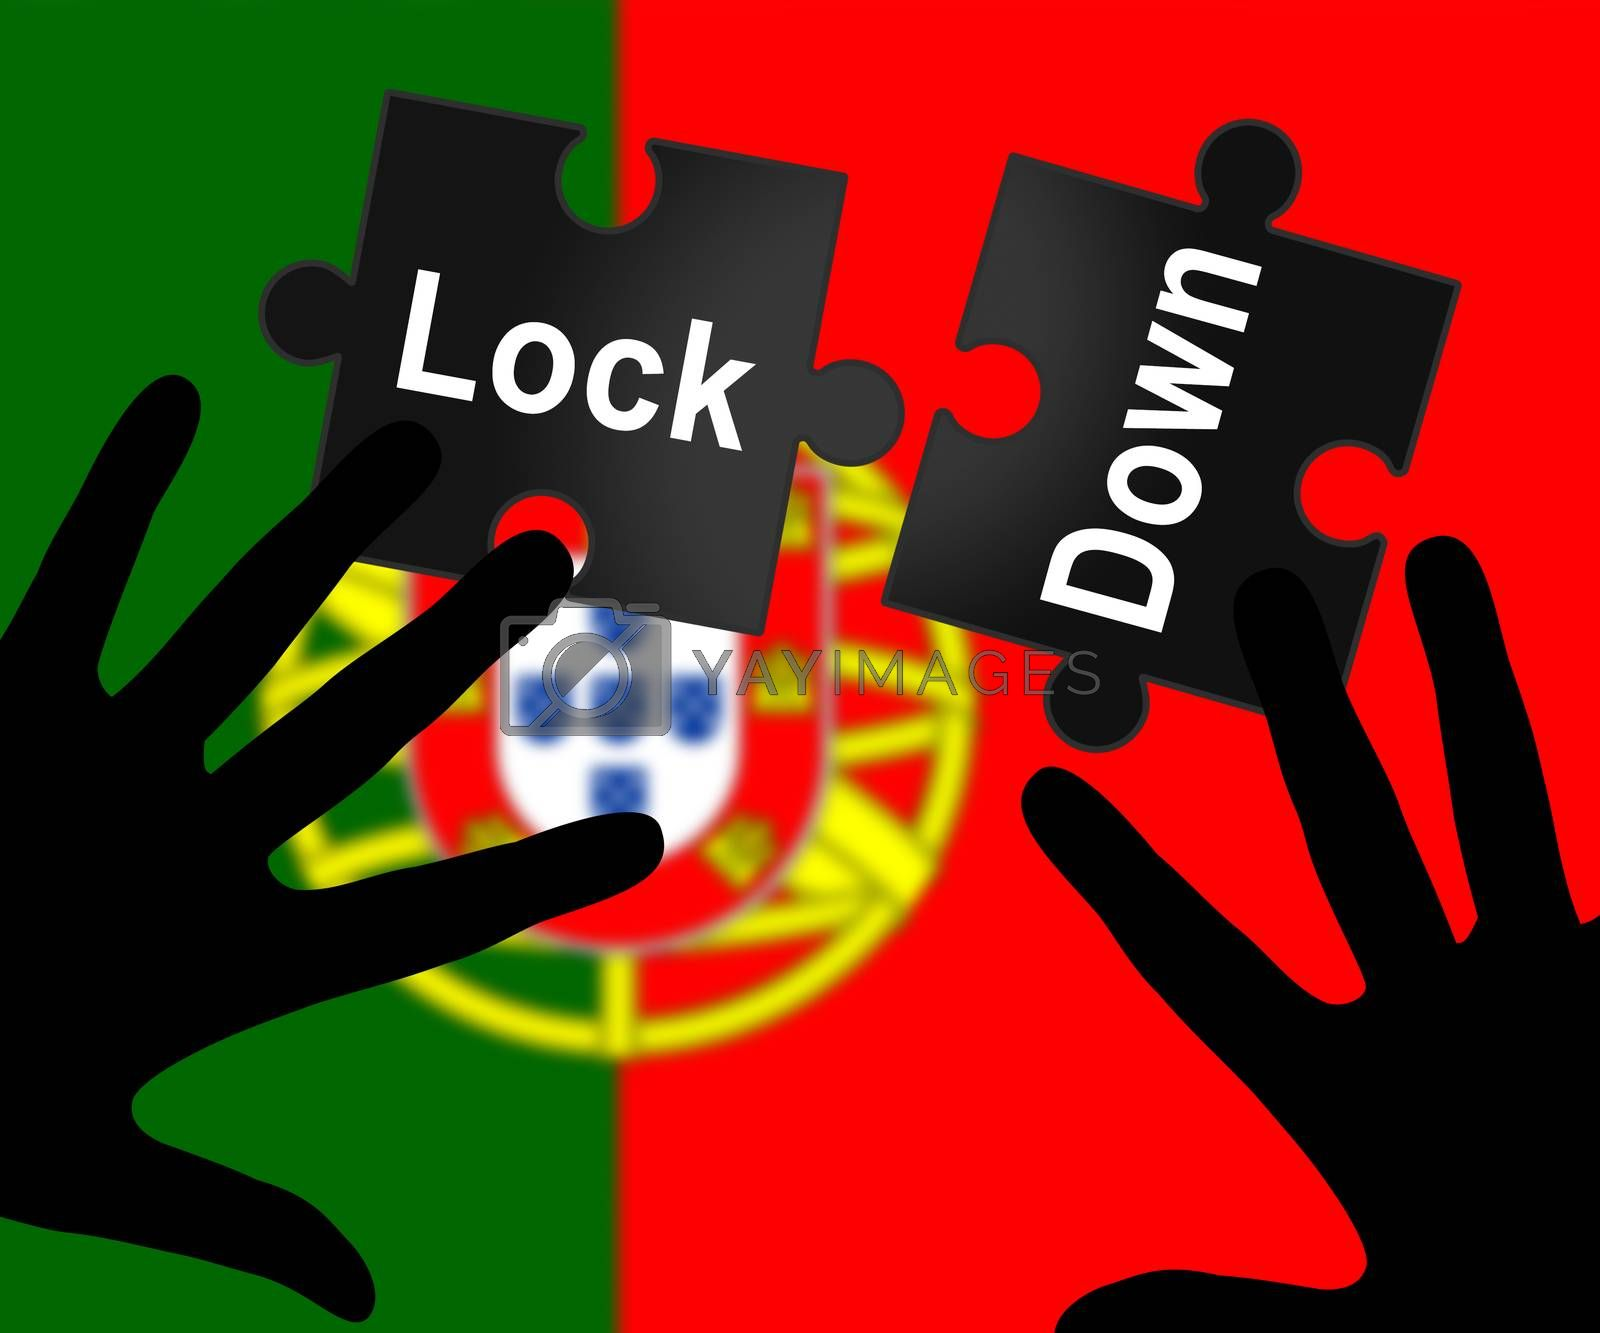 Portugal lockdown in solitary confinement or stay home. Portuguese lock down from covid-19 pandemic - 3d Illustration